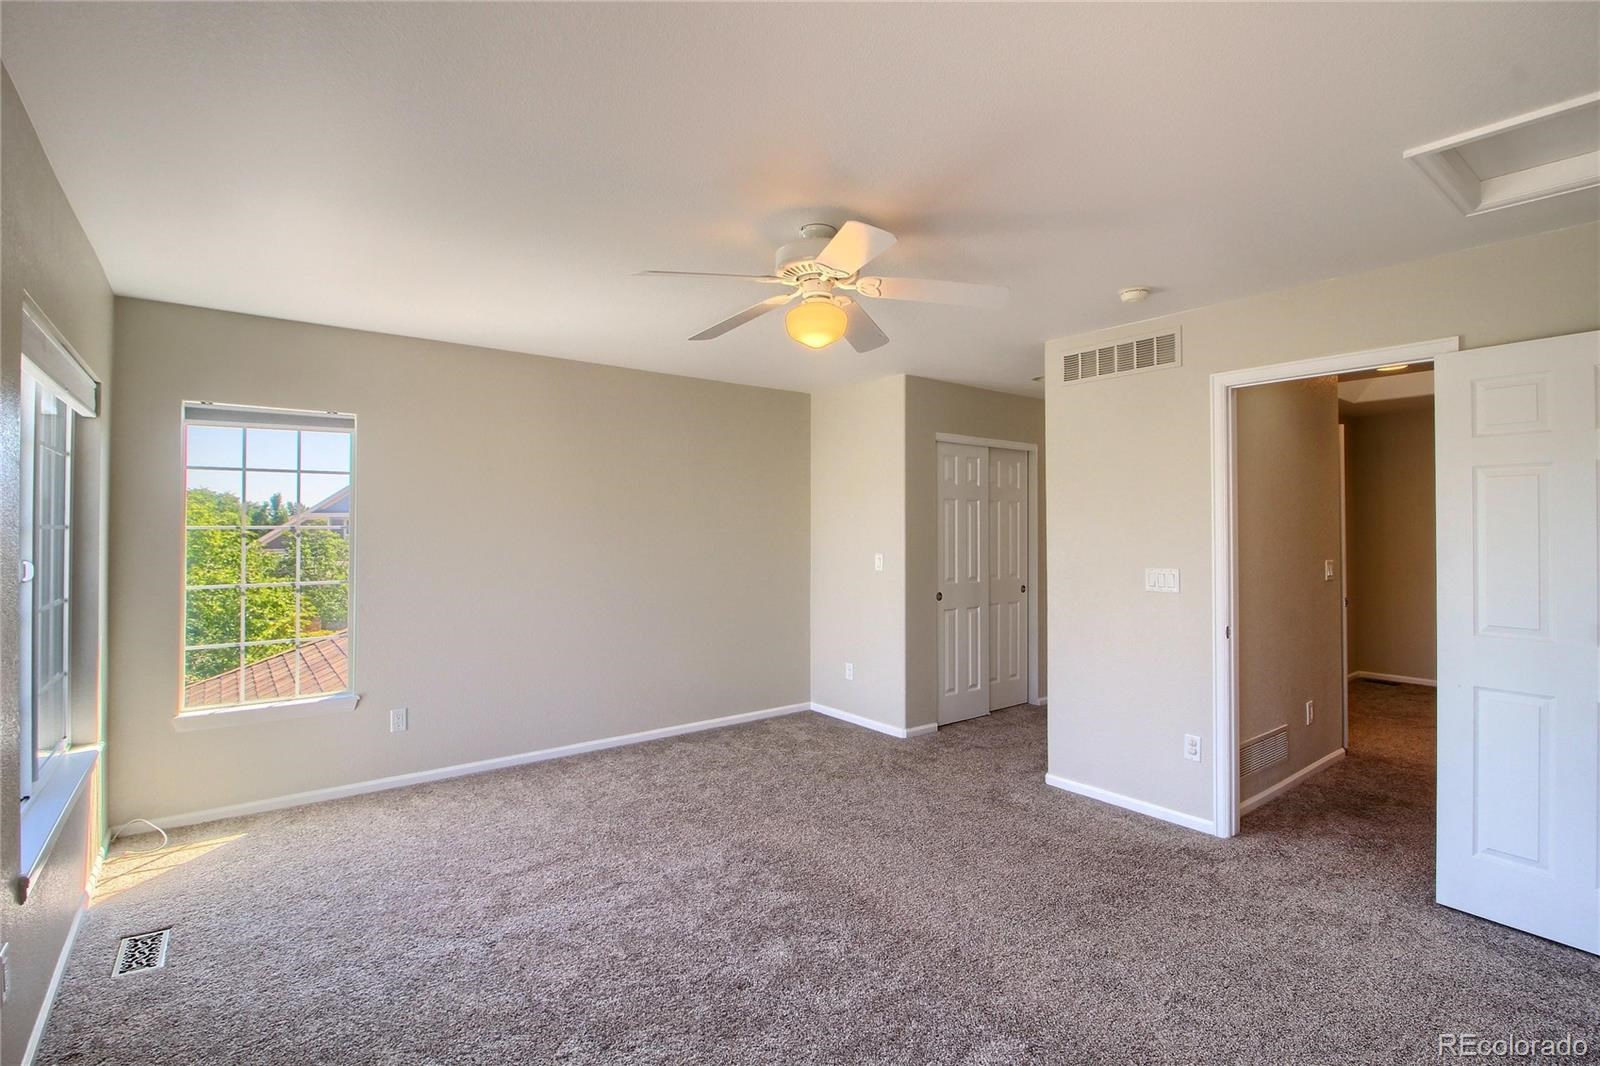 MLS# 8597792 - 16 - 13787 Stone Circle #101, Broomfield, CO 80023